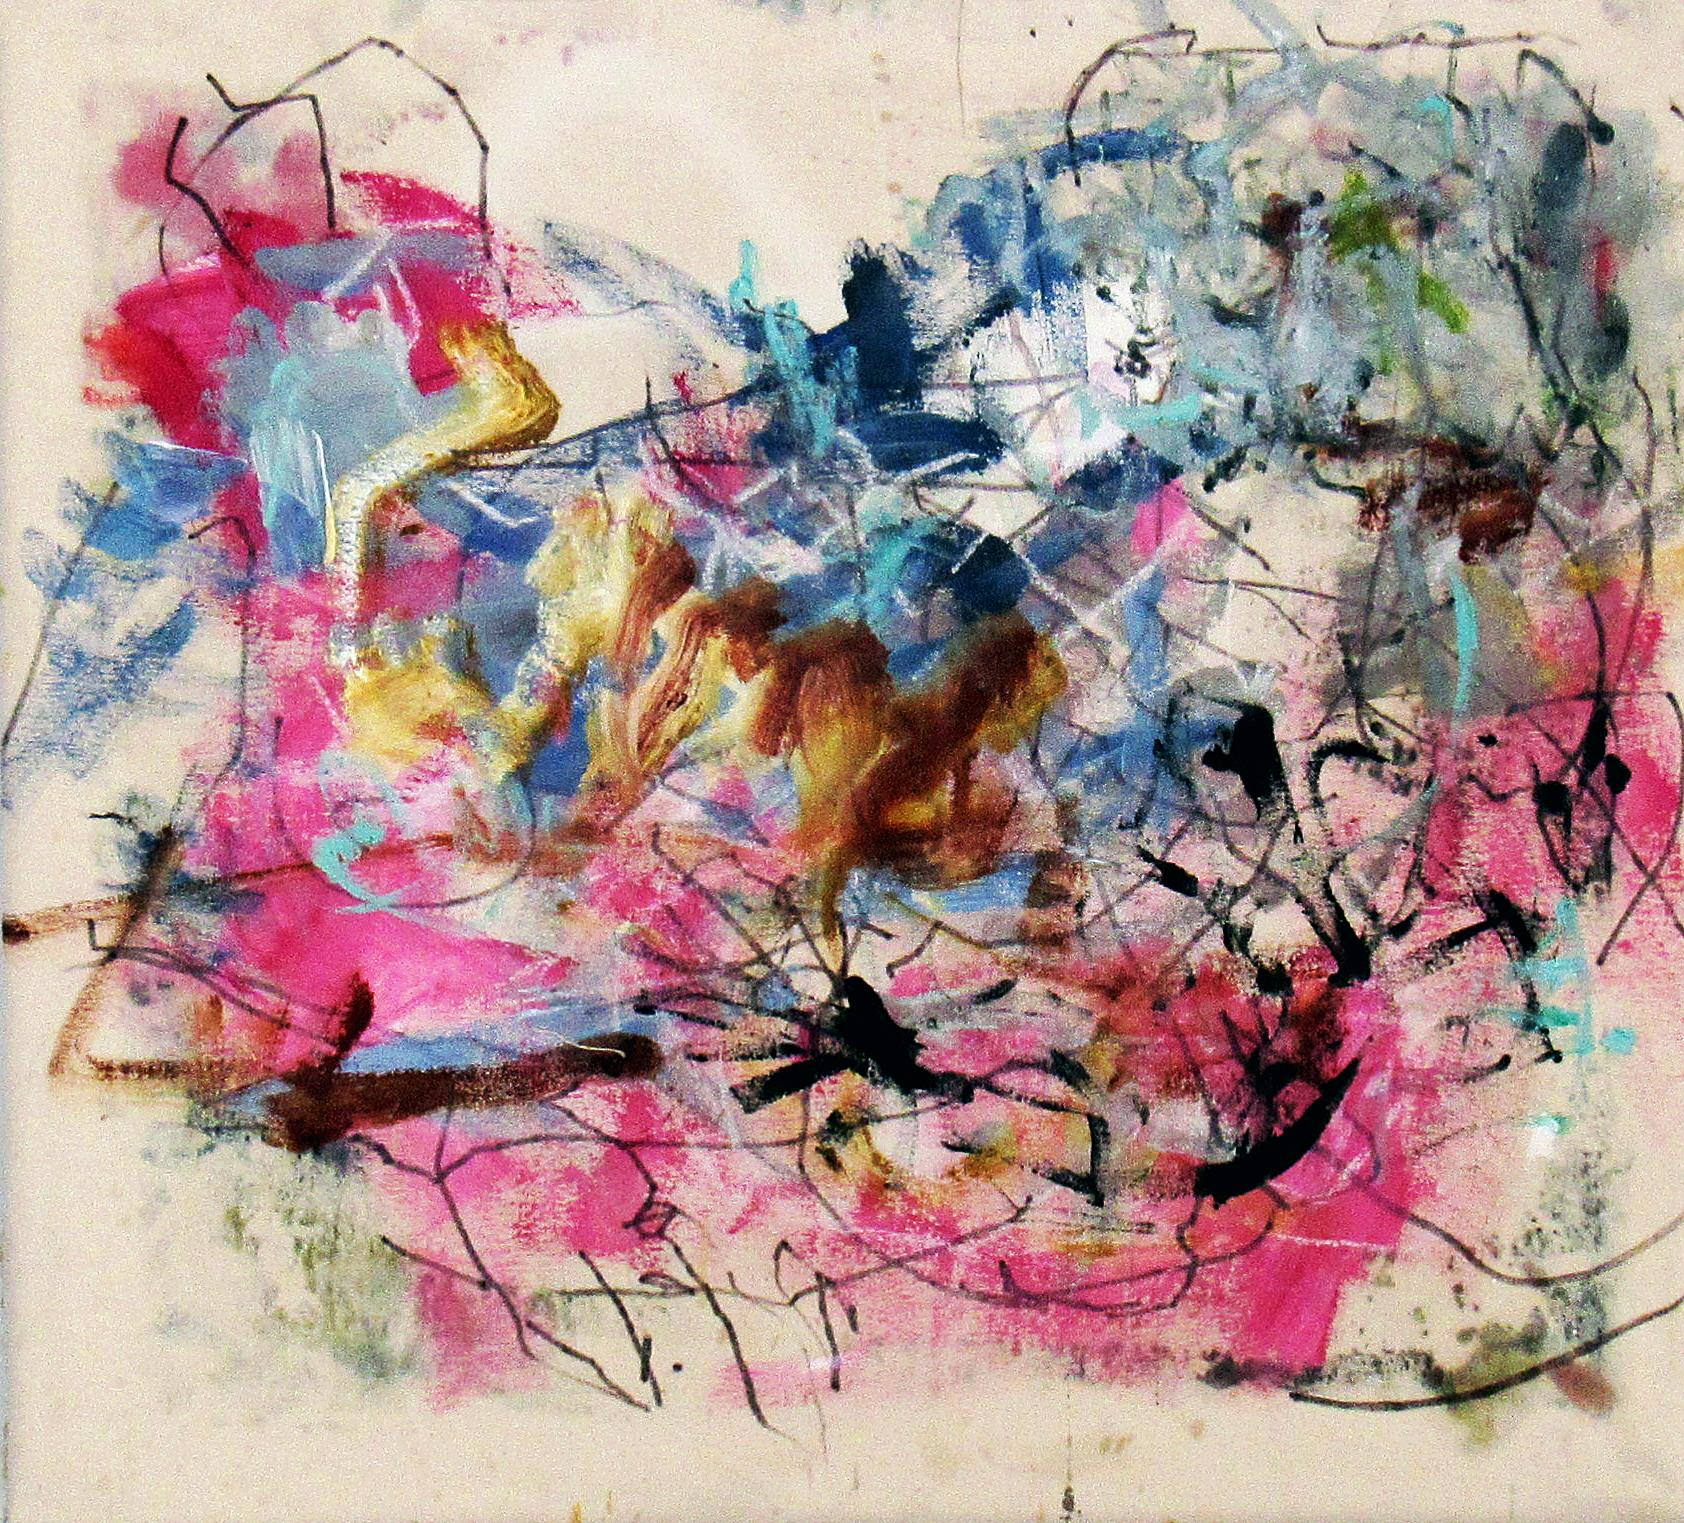 The Incredible Combustible, colorful abstract of classical figure theme